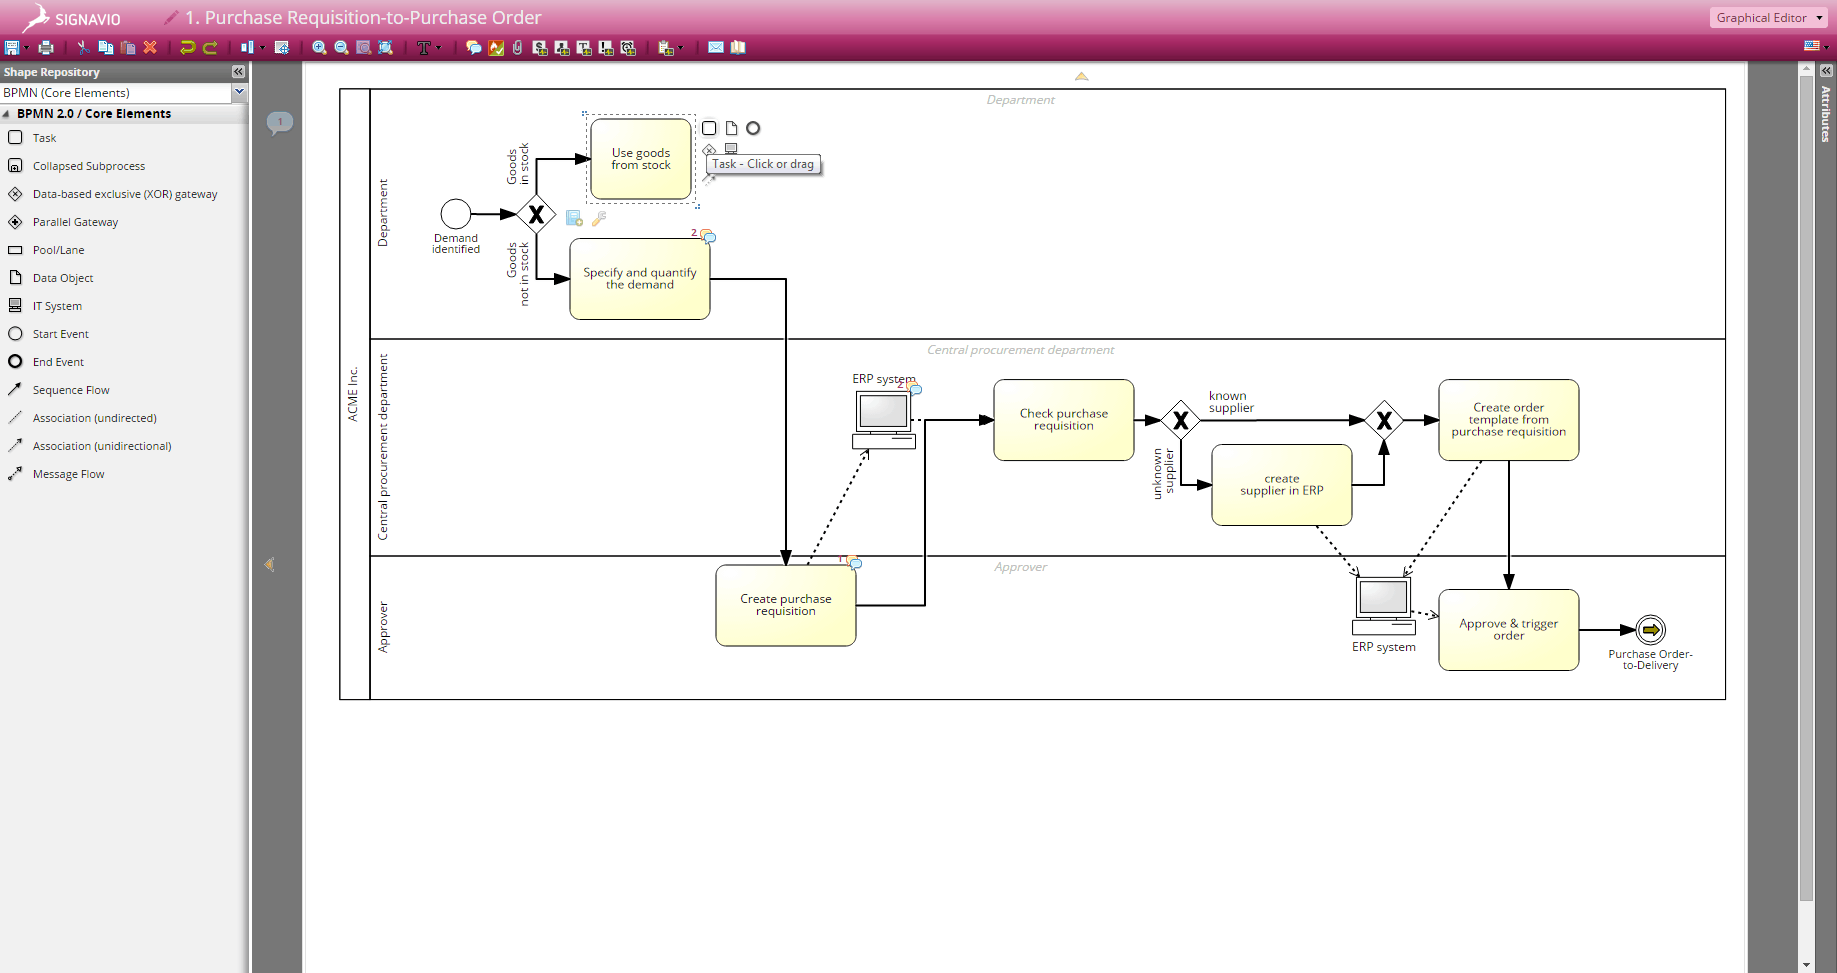 Bpmn 20 modeling language supported by signavio process manager bpmn 20 diagram within signavio process manager ccuart Gallery